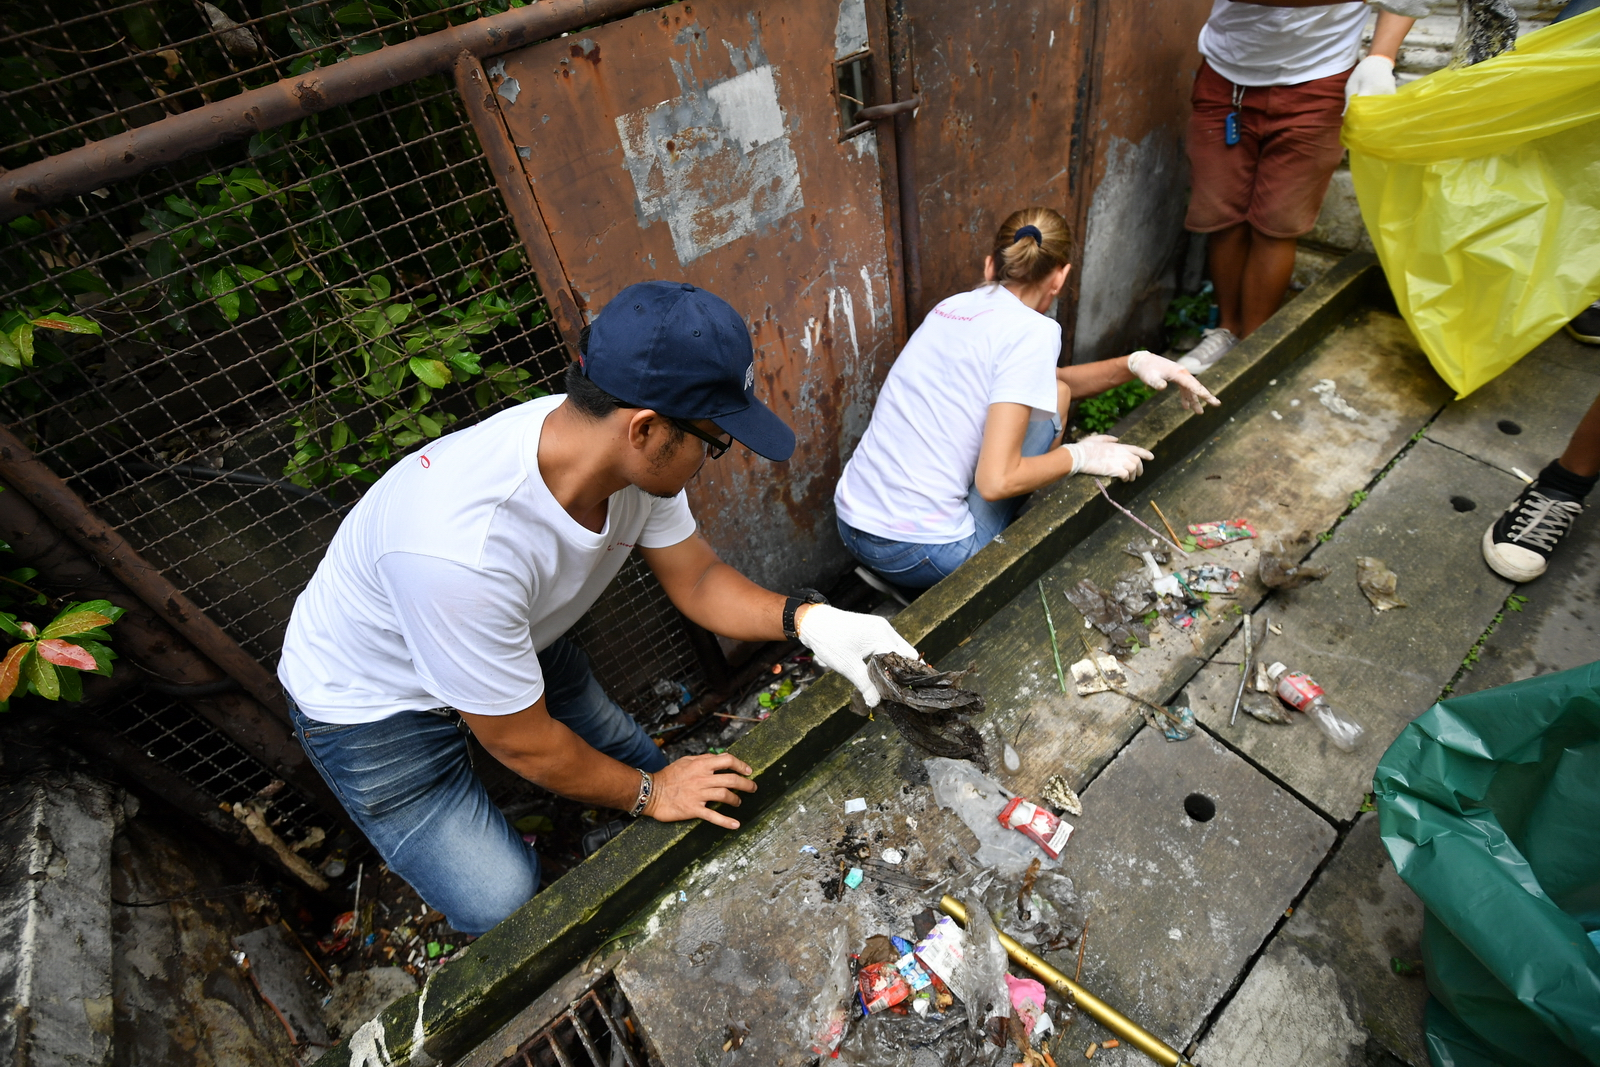 PTendercool-Event-Clean Up The World-190921-050